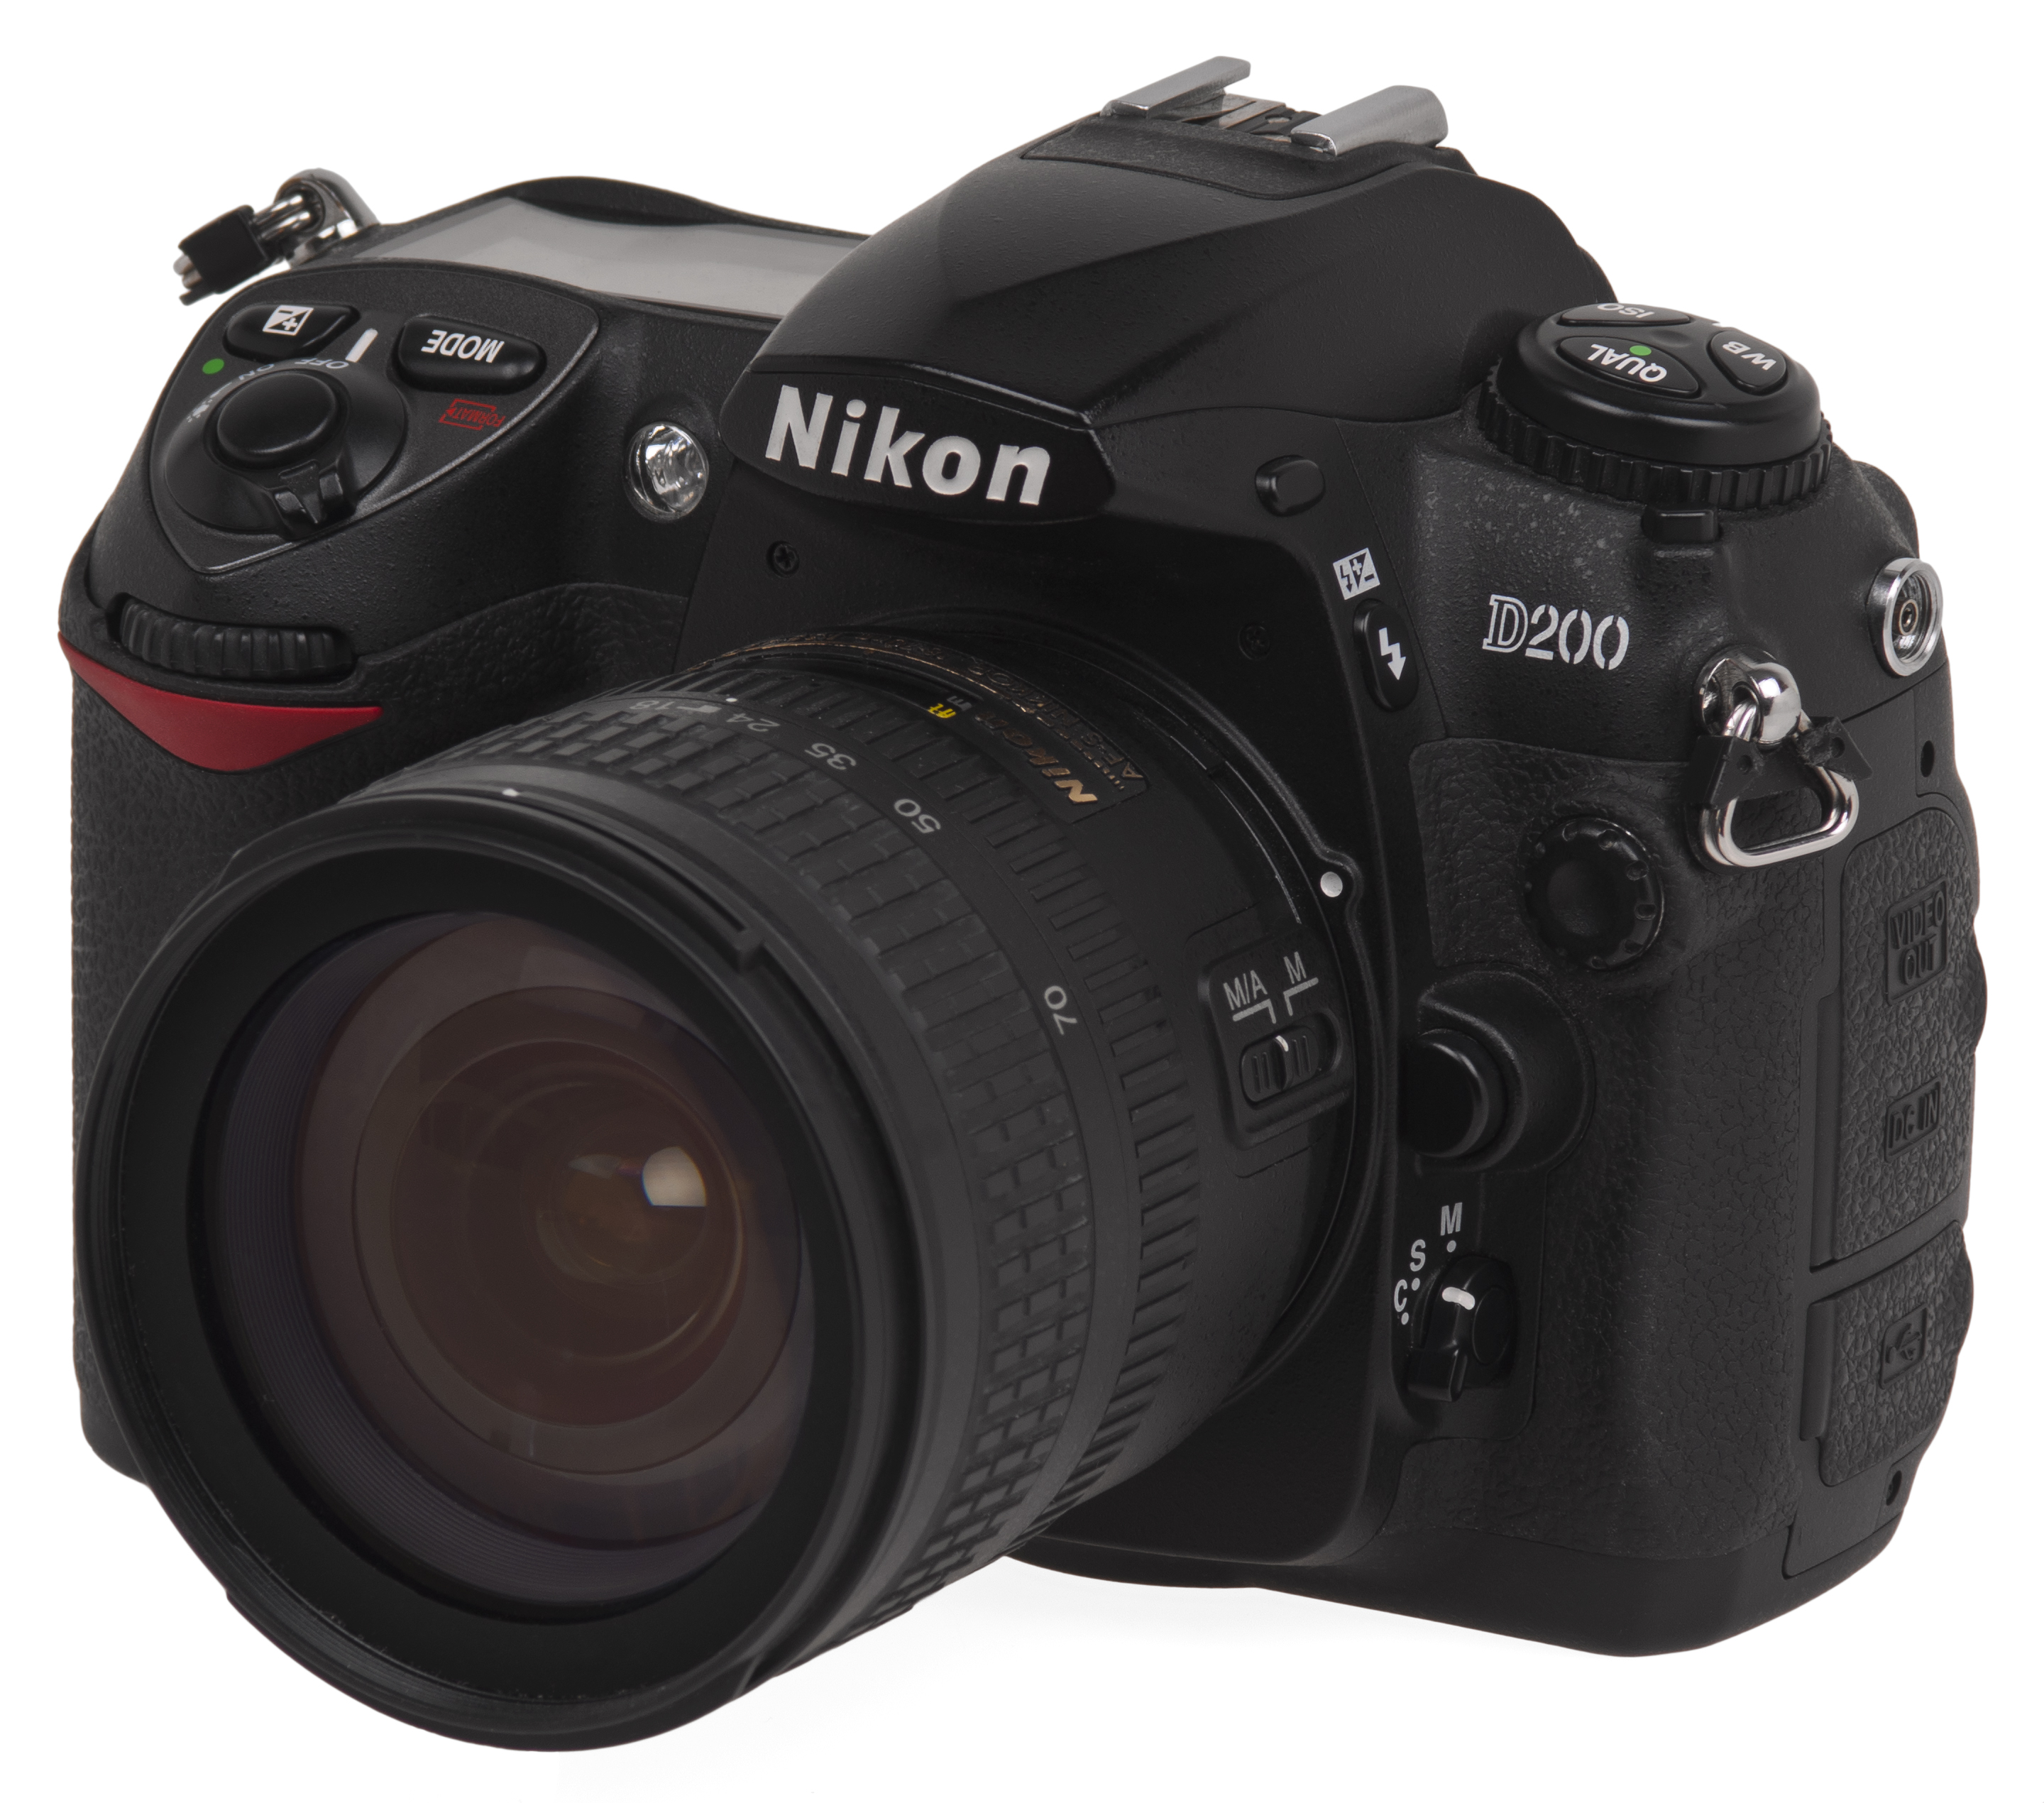 File:Nikon-D200-and-Lens.jpg - Wikimedia Commons